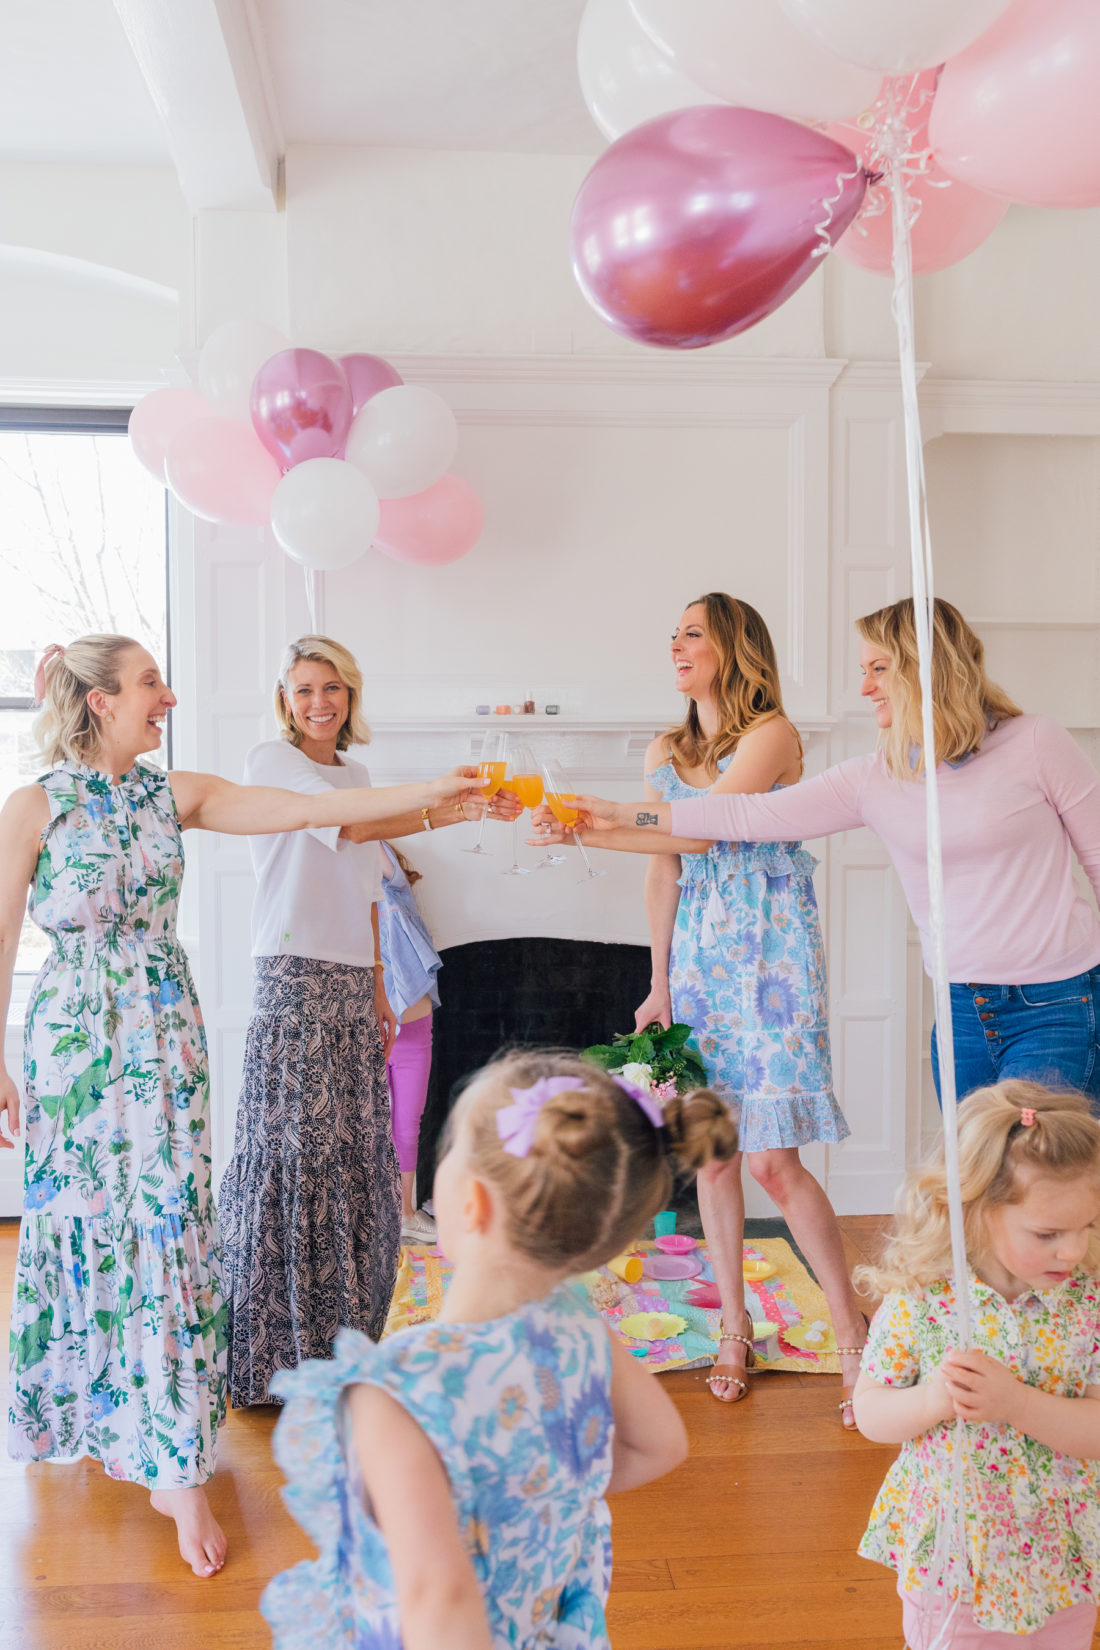 Eva Amurri Martino of Happily Eva After, Sarah, owner of Indigo Acupuncture + Wellness, Lauren, owner Dudley Stephens, and blogger Julia from Lemon Stripes throw a tea party for their daughters